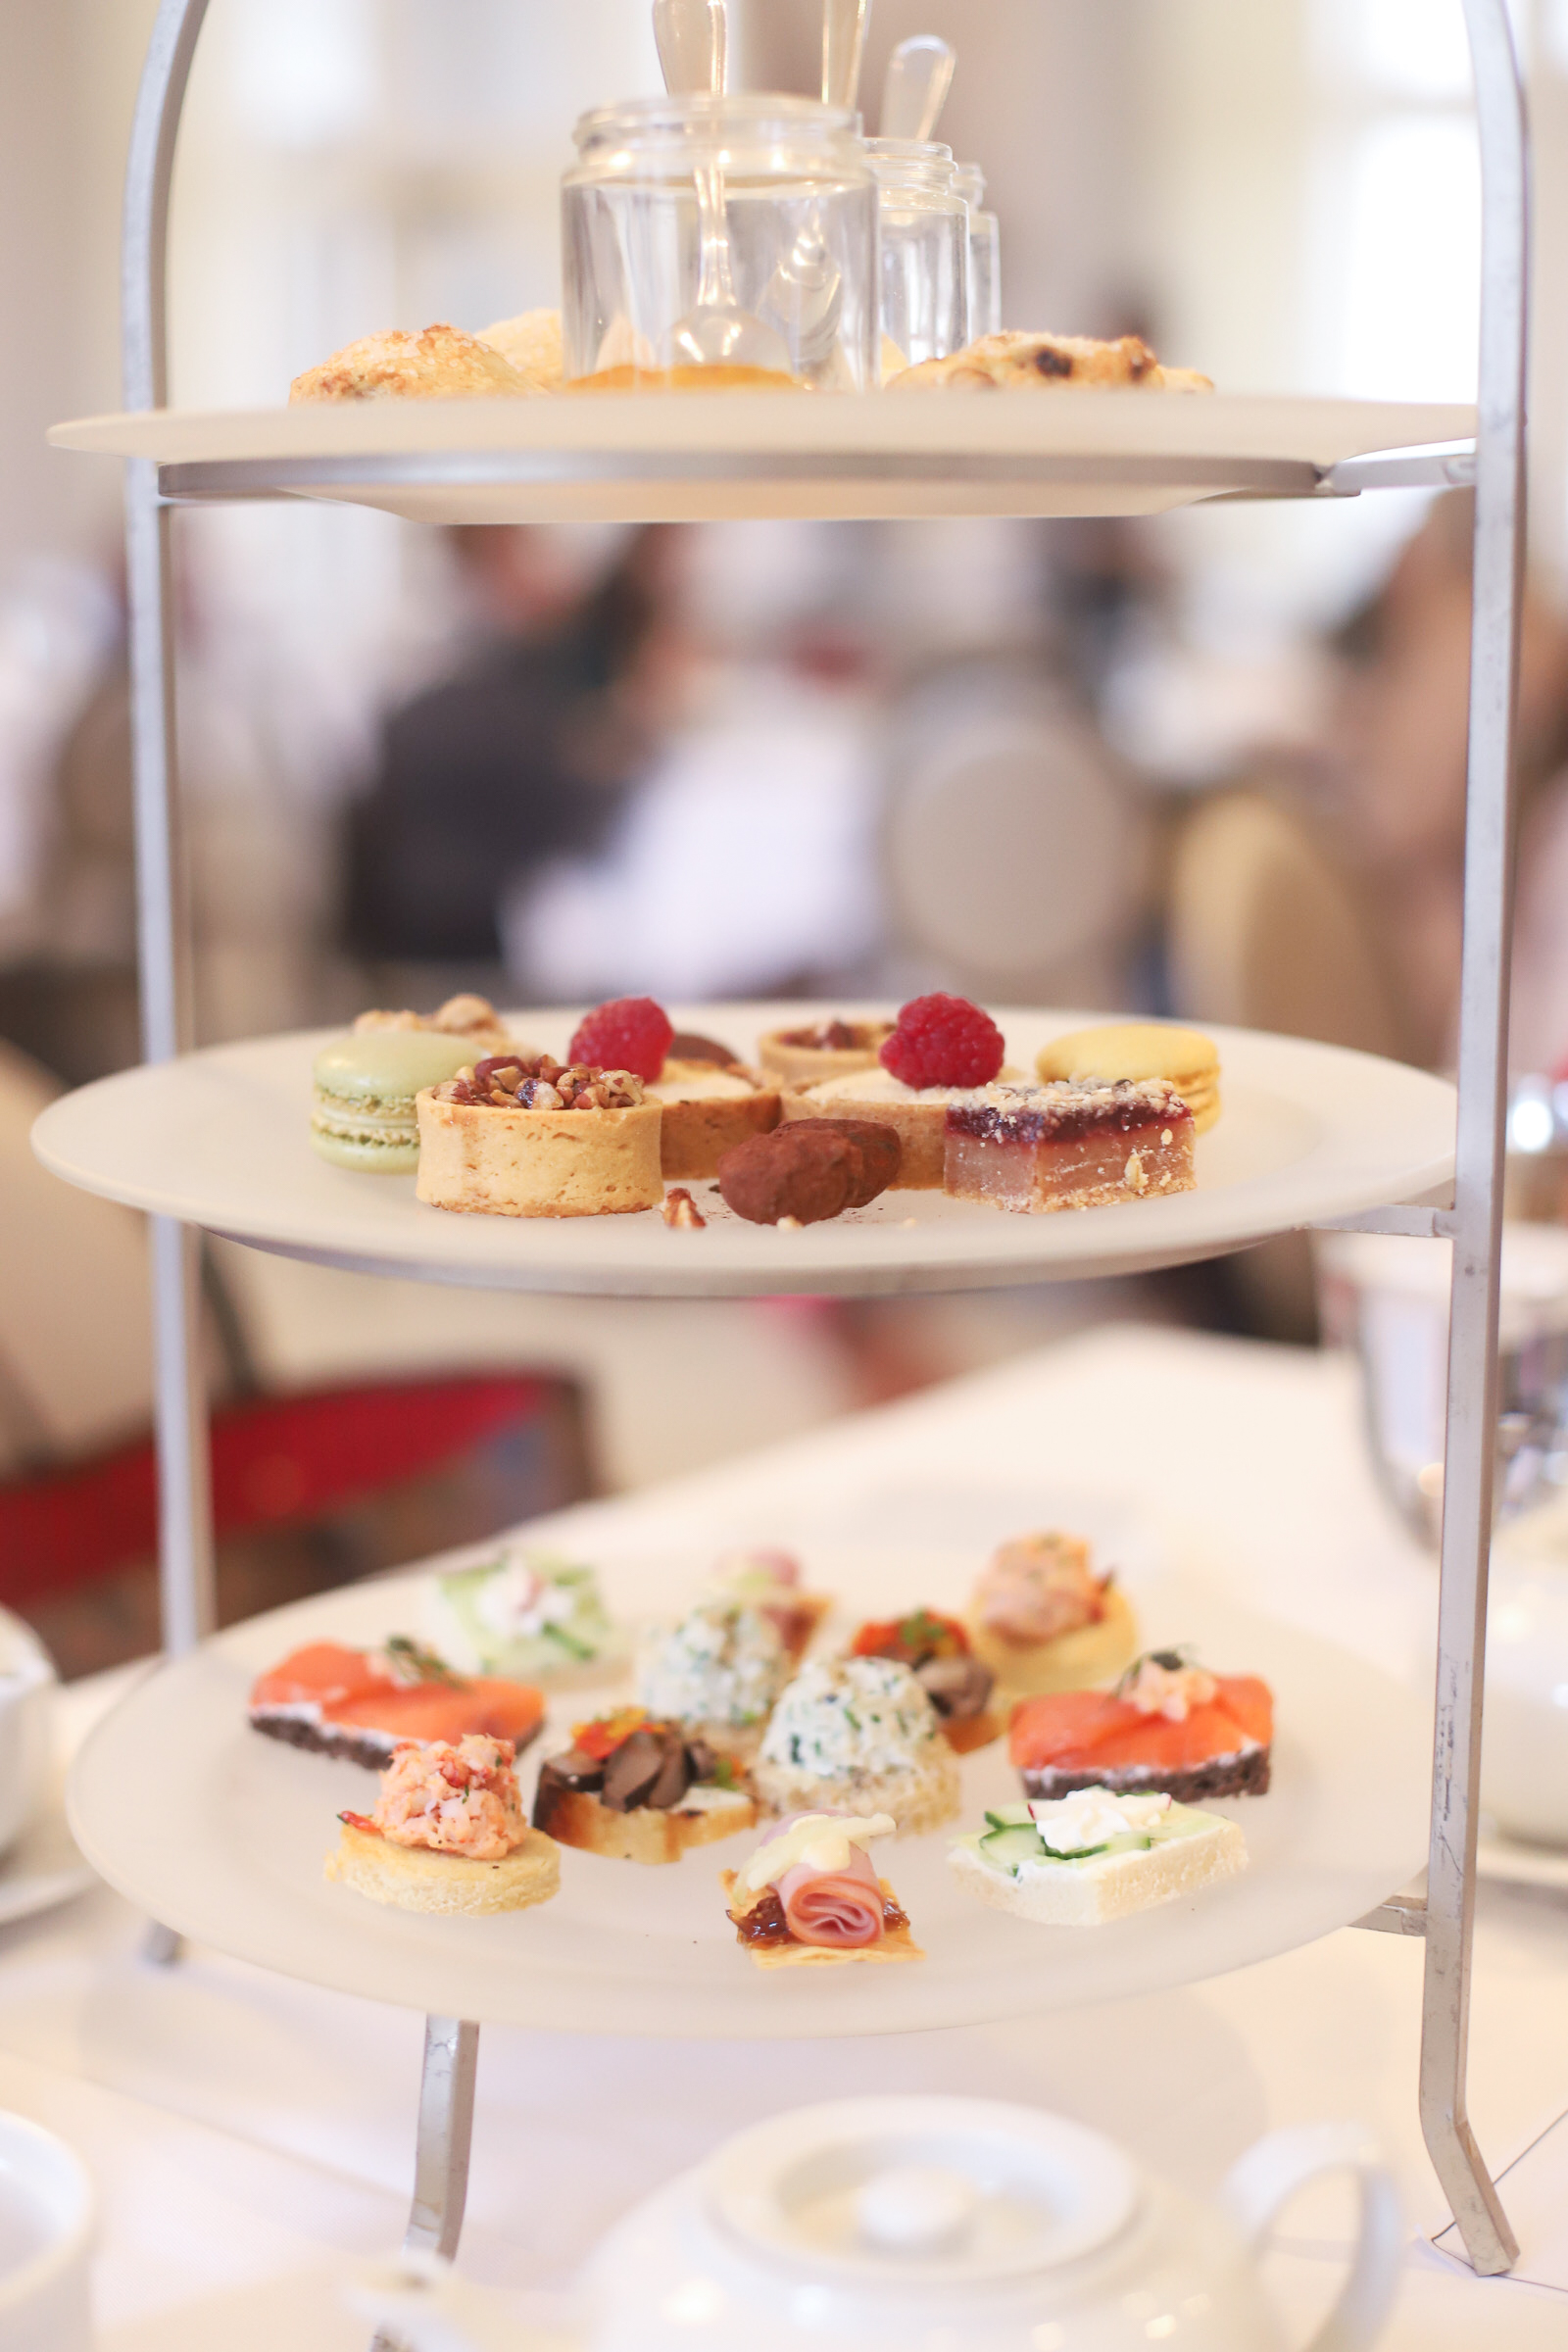 Visiting Boston? Be sure to spend an afternoon at The Courtyard Tea Room in the Boston Public Library for the yummiest, classic high tea in the city! Bonus: it's a kid-friendly afternoon tea, perfect for families. | glitterinc.com | @glitterinc